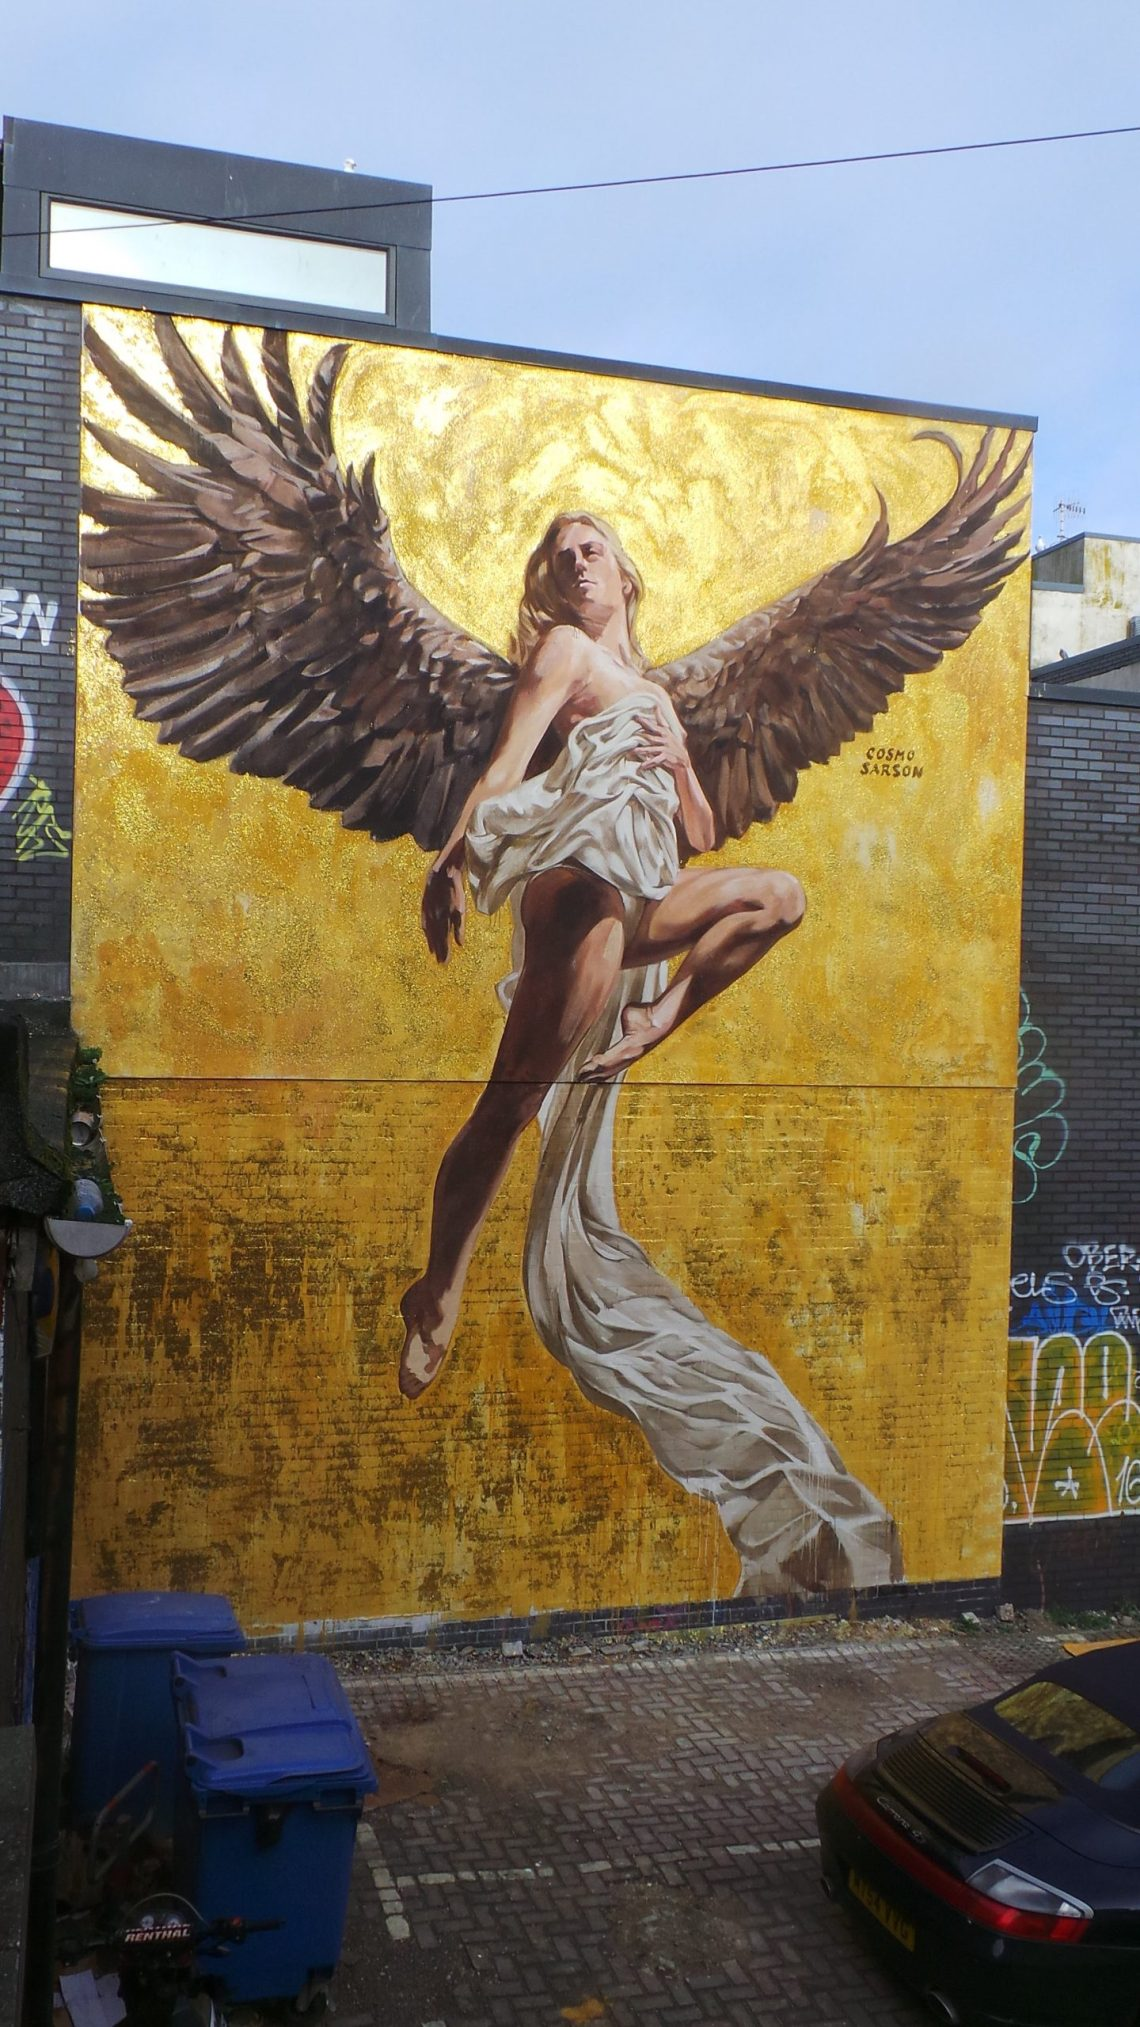 The completed angel mural in Brighton by Cosmo Sarson